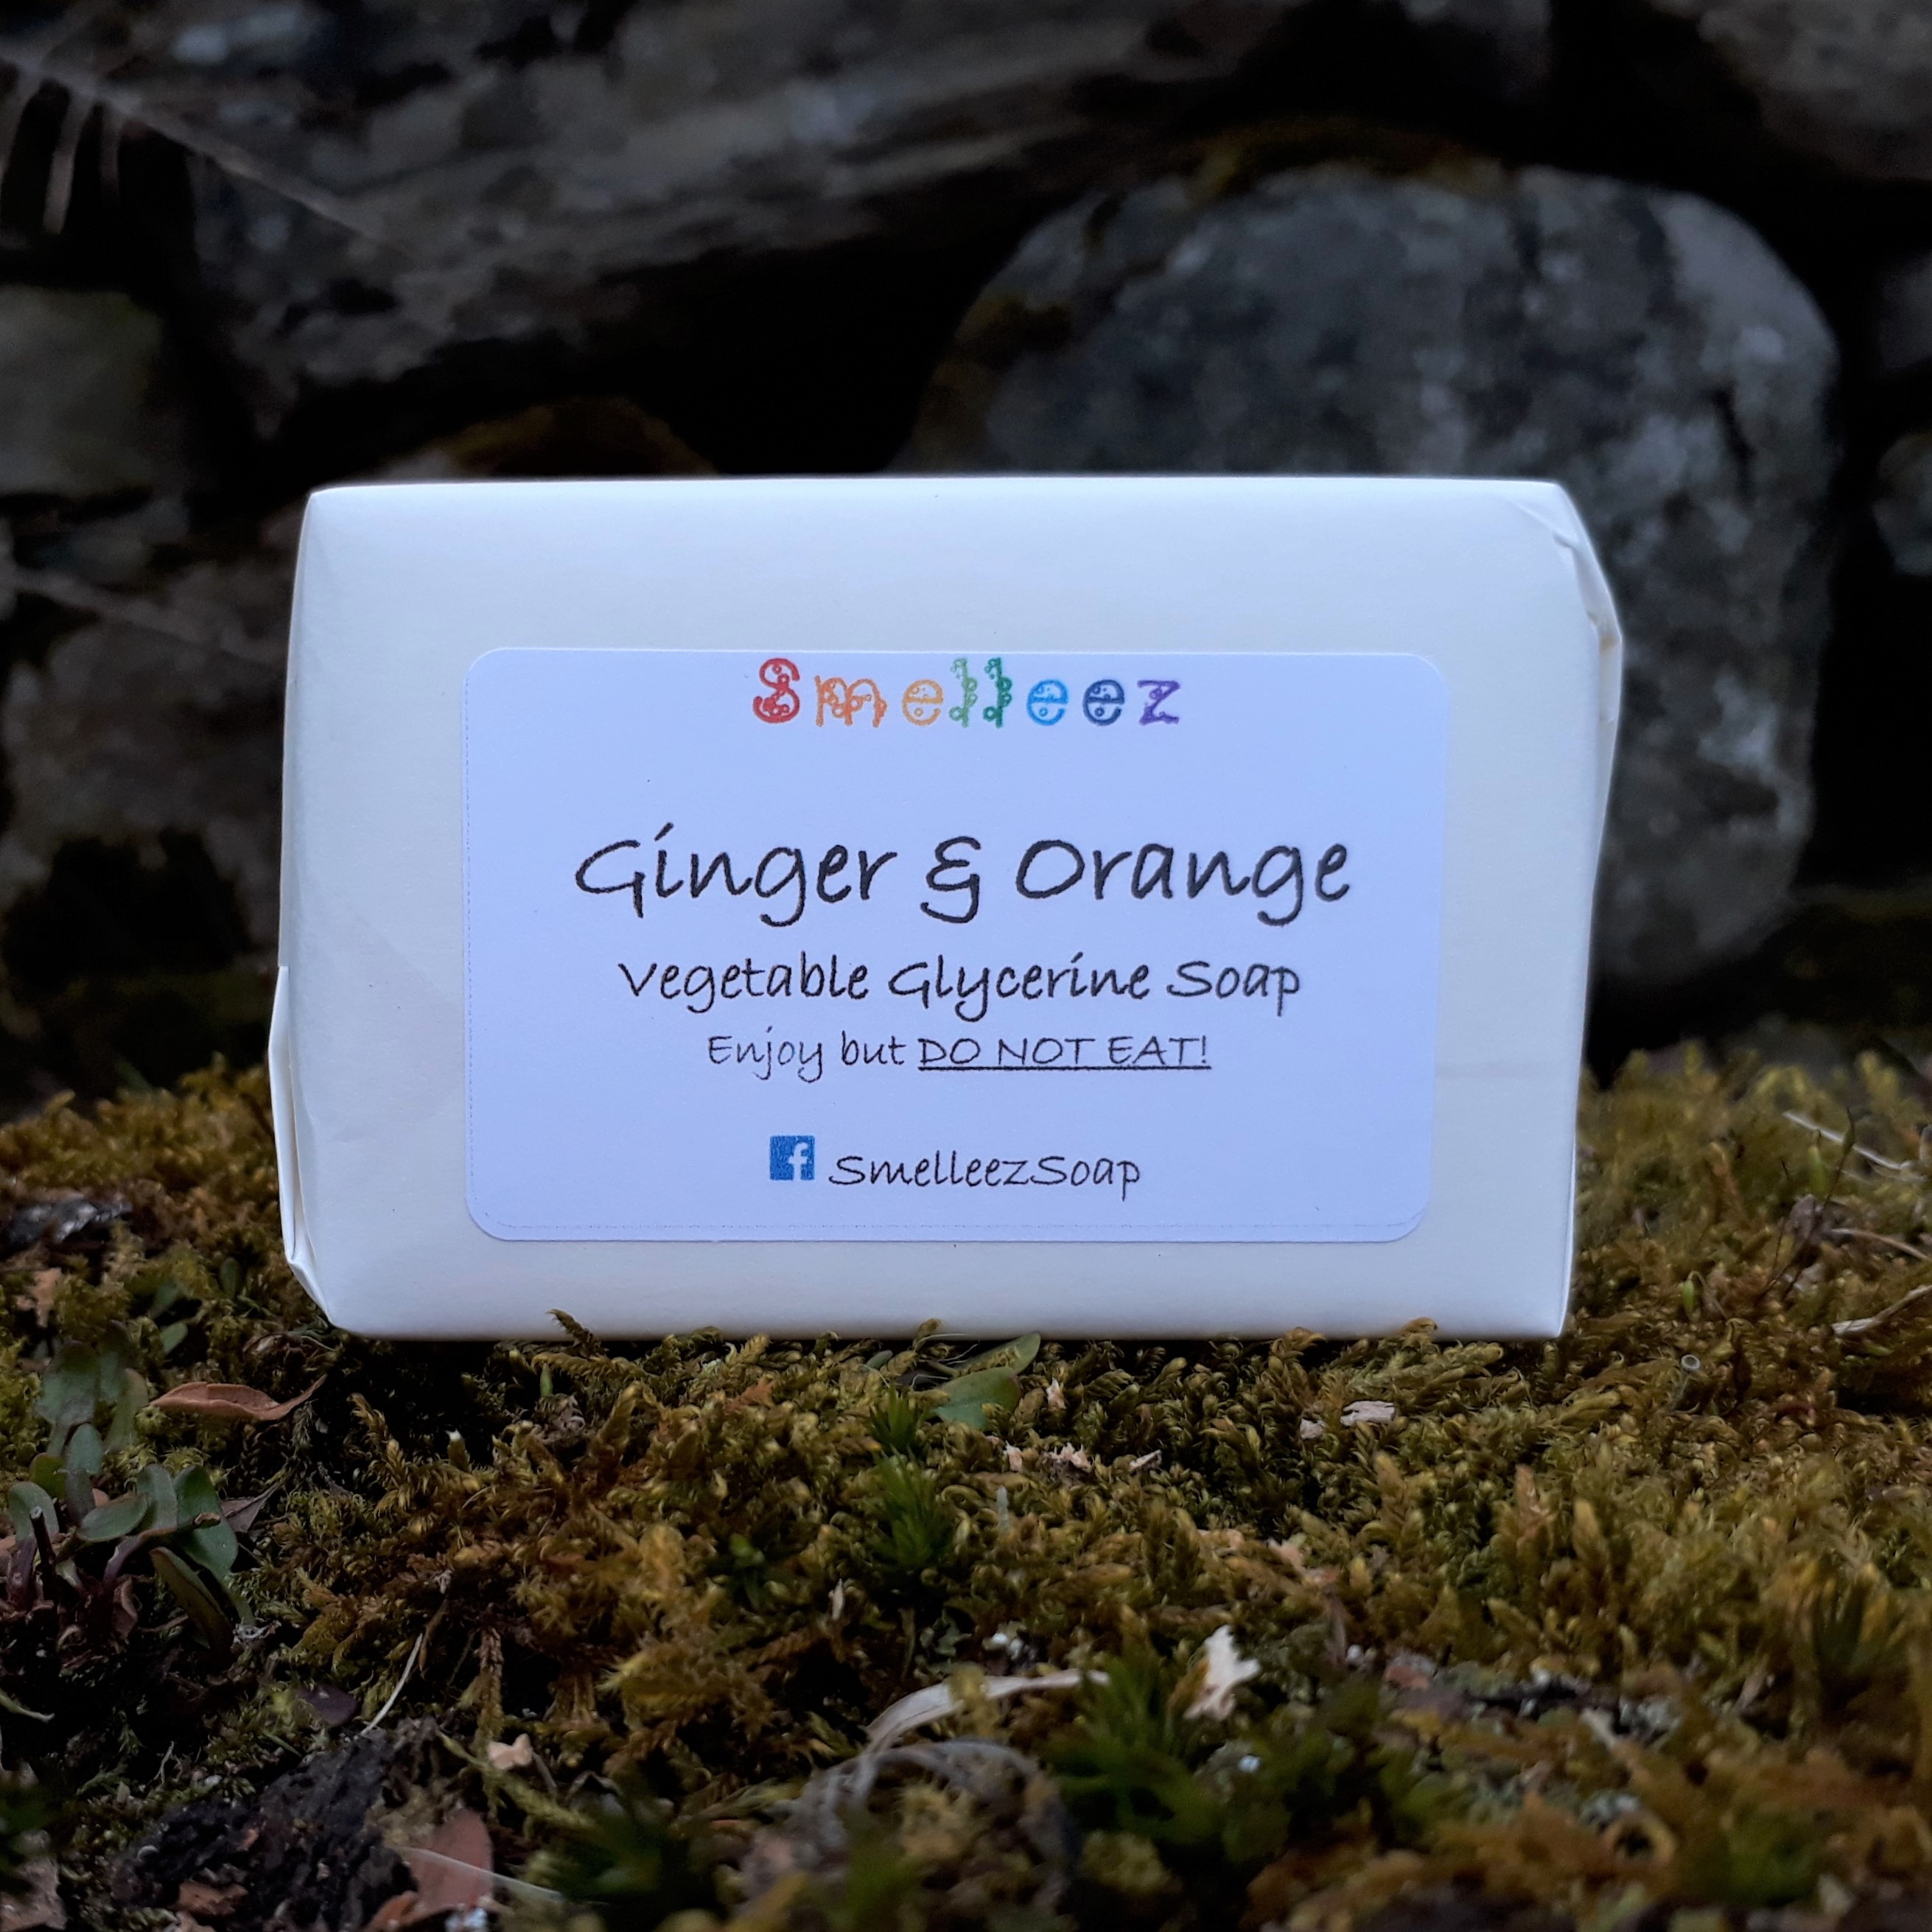 Ginger & Orange